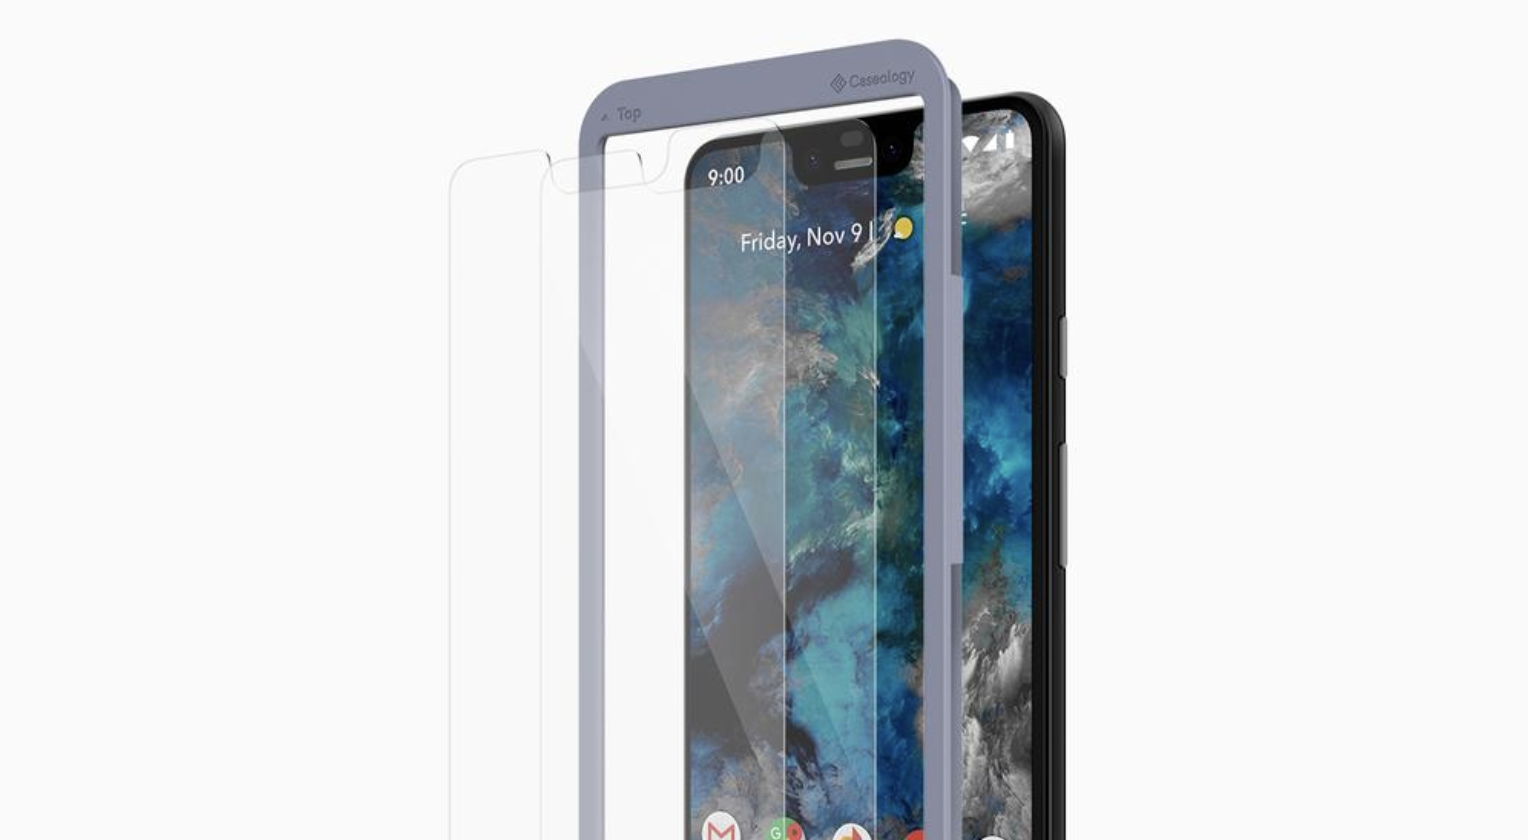 new concept e0caf d02b7 Update: Dead] Price mistake: Pixel 3 and Pixel 3 XL glass screen ...